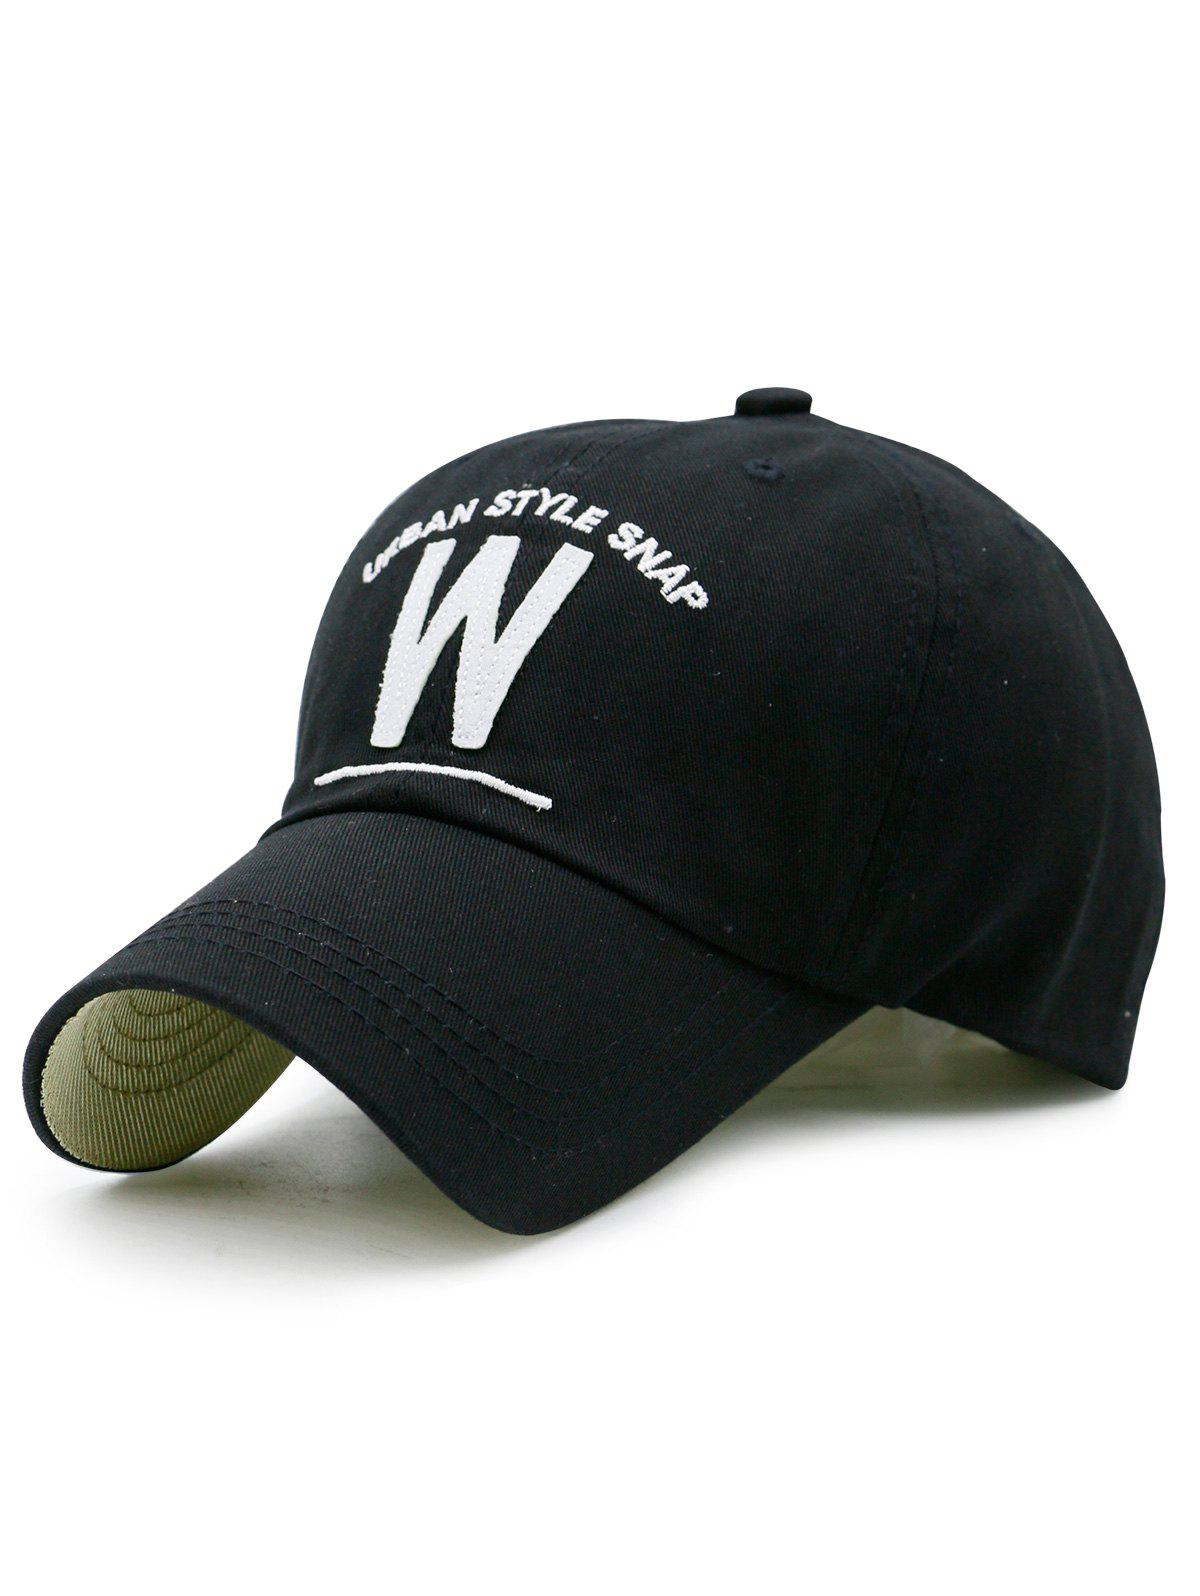 W Shape and Embroidered Baseball Hat, Black